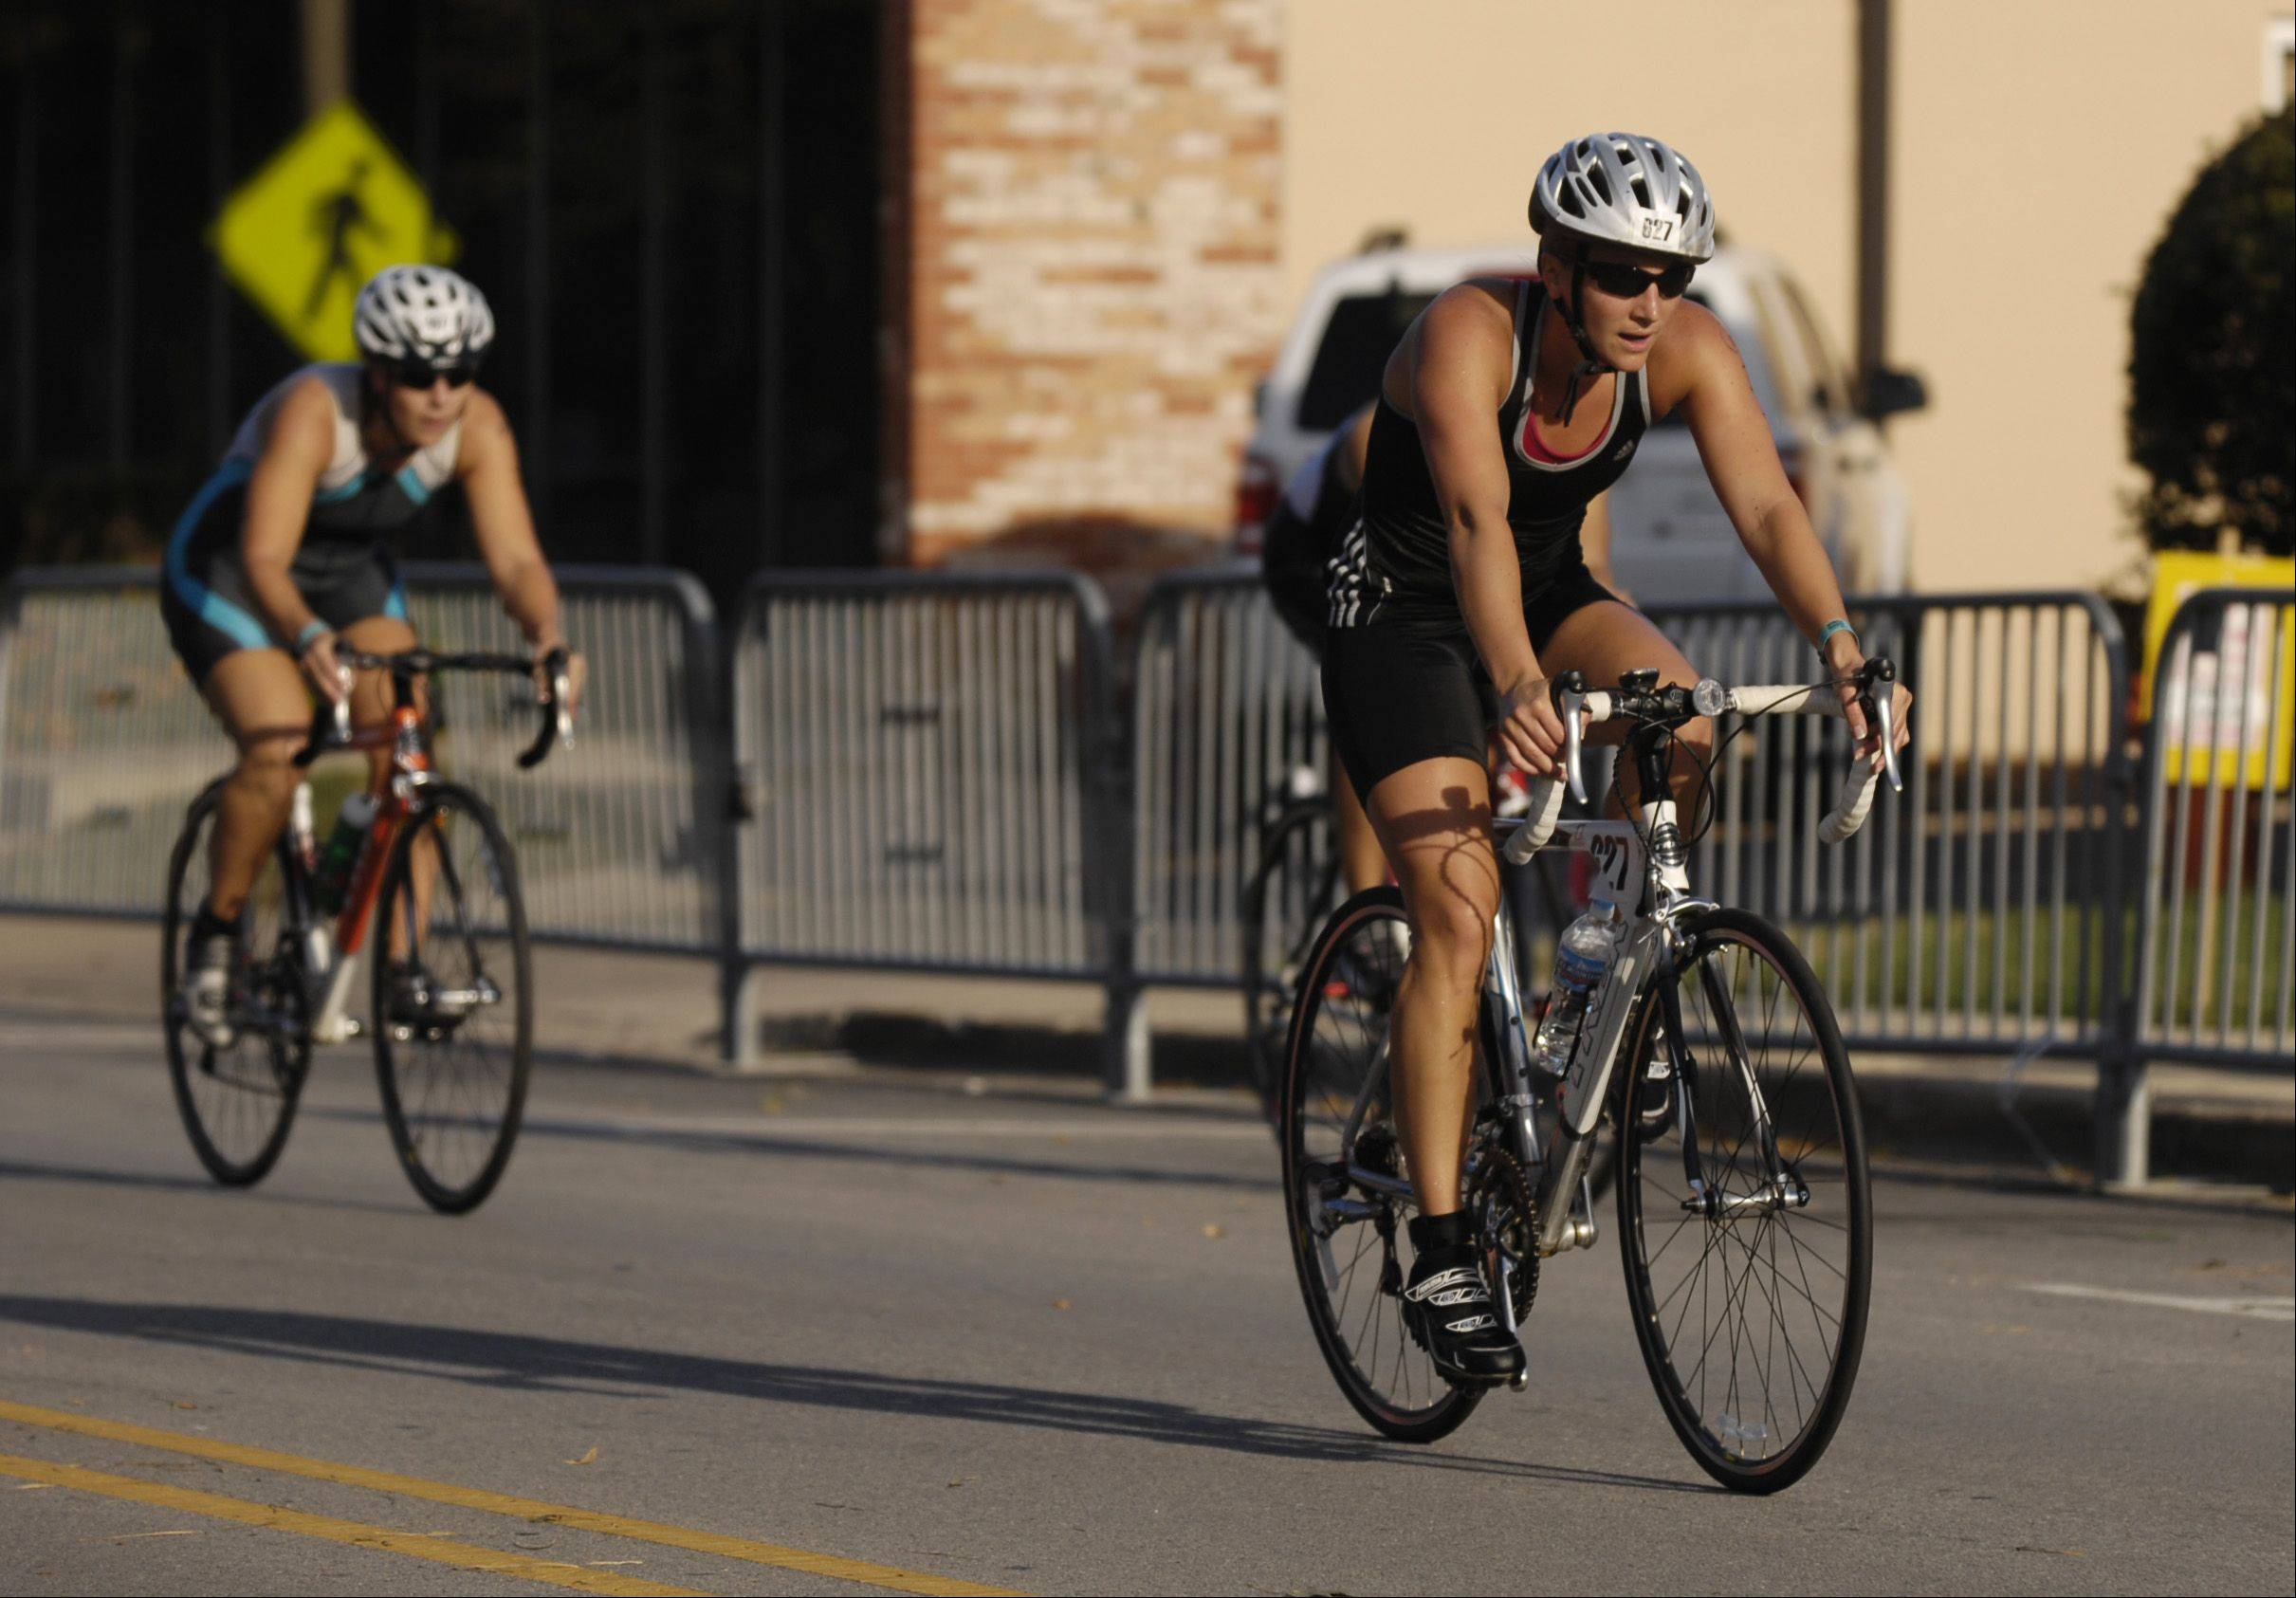 Racers head out on the course for the biking portion of the 2012 Naperville Sprint Triathlon at Centennial Beach Sunday.